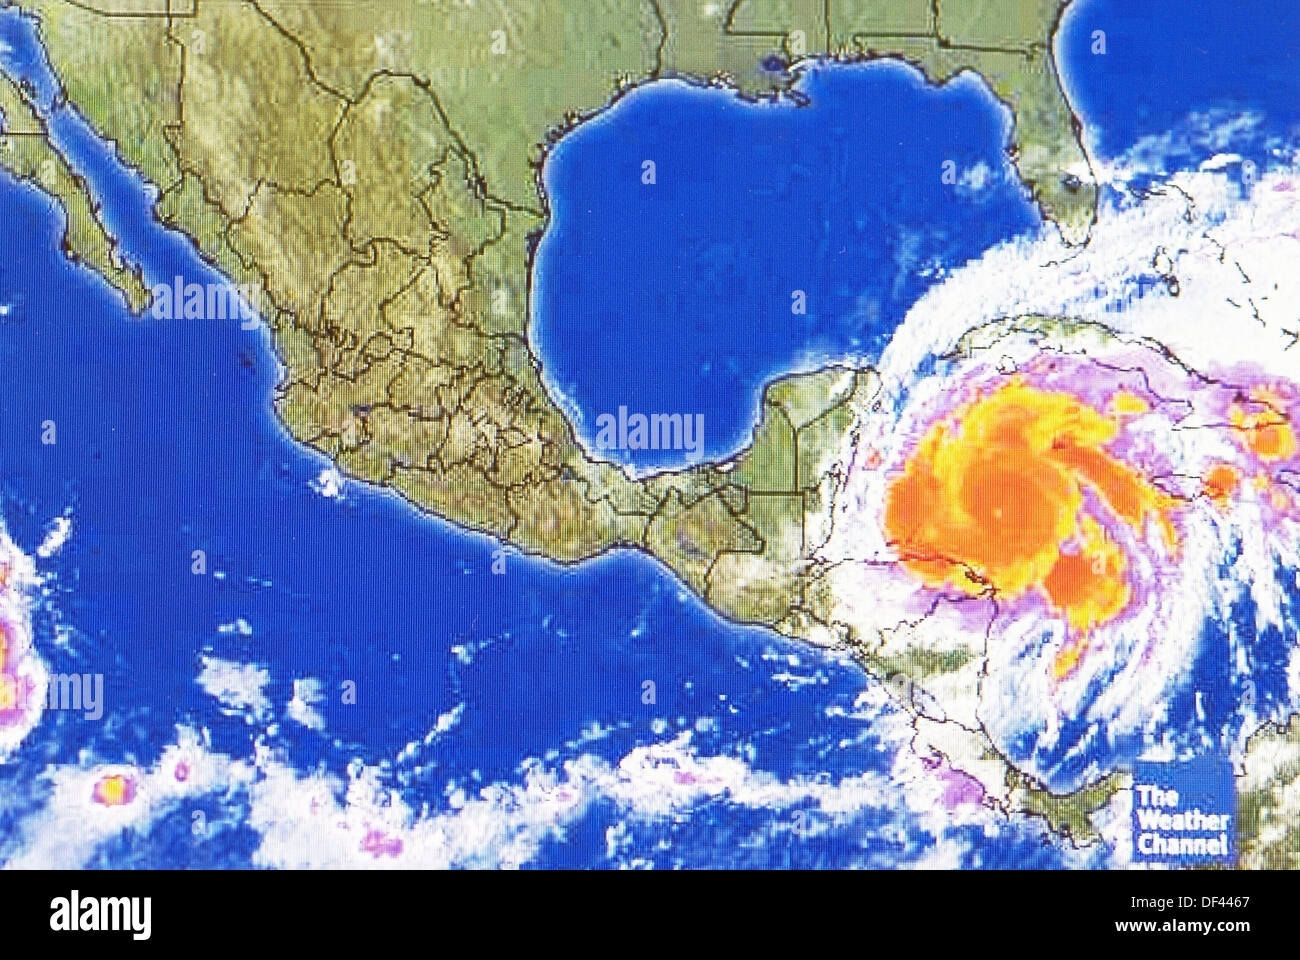 Weather Forecast Map Stock Photos   Weather Forecast Map Stock     Hurricane weather map of a level 5 storm as viewed on the internet and on tv